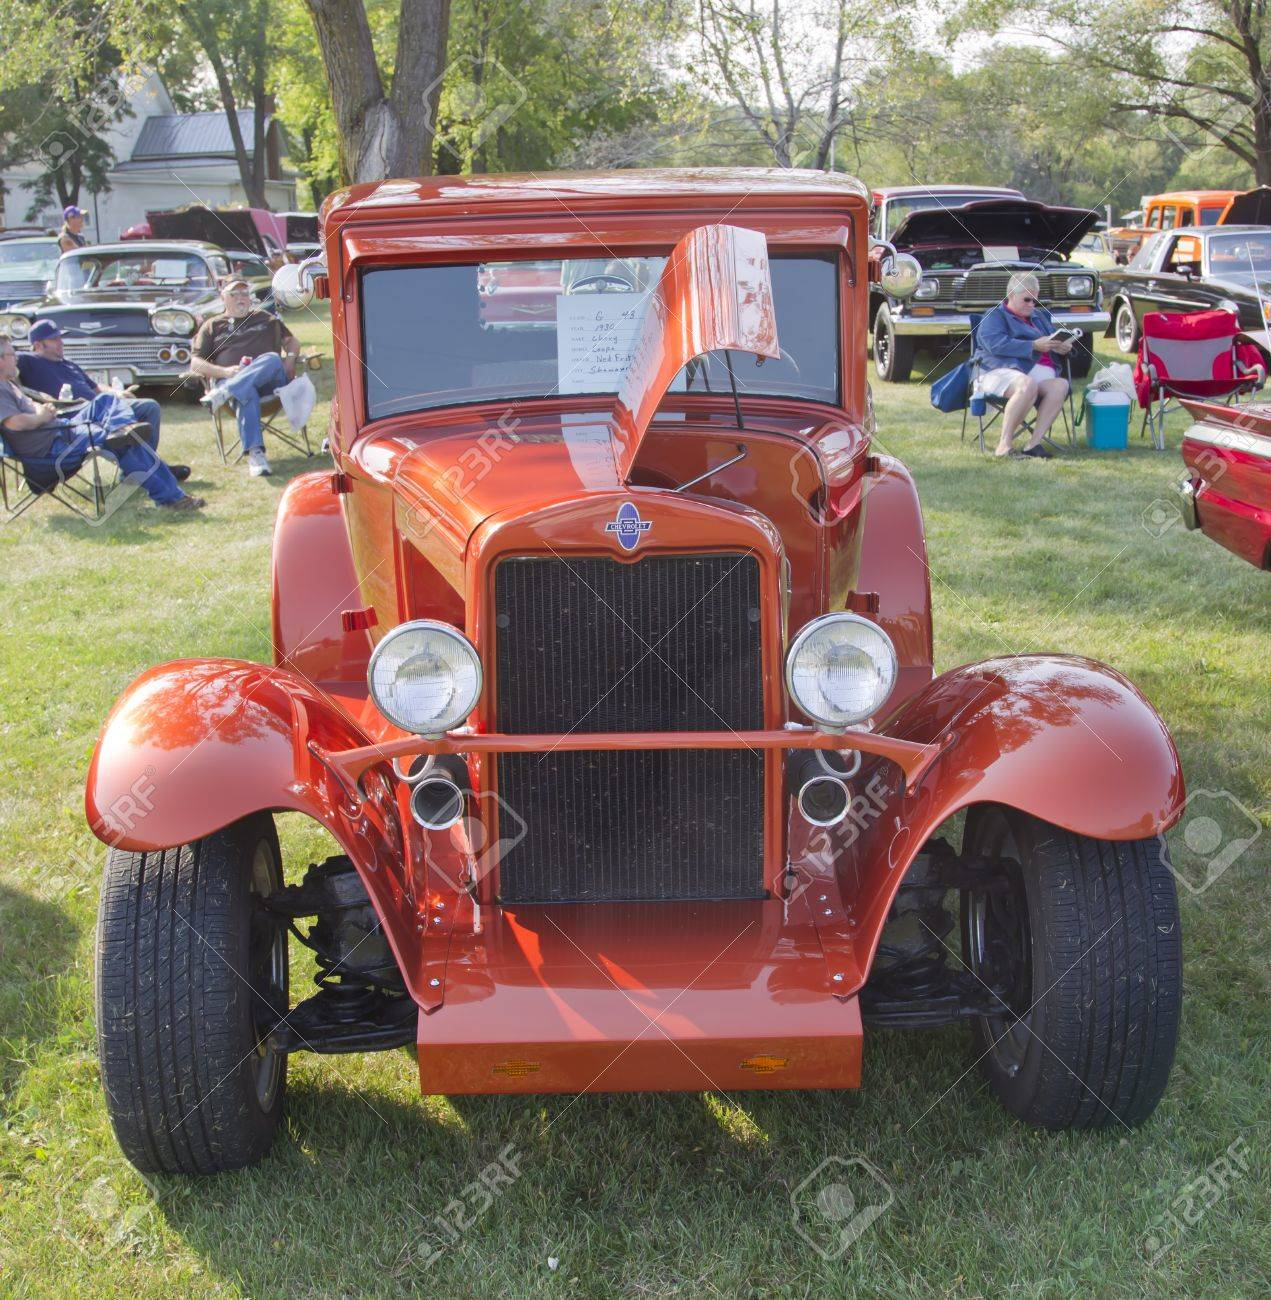 MARION, WI - SEPTEMBER 16: Front of 1930 Orange Chevy Coupe car at the 3rd Annual Not Just Another Car Show on September 16, 2012 in Marion, Wisconsin. Stock Photo - 15318721